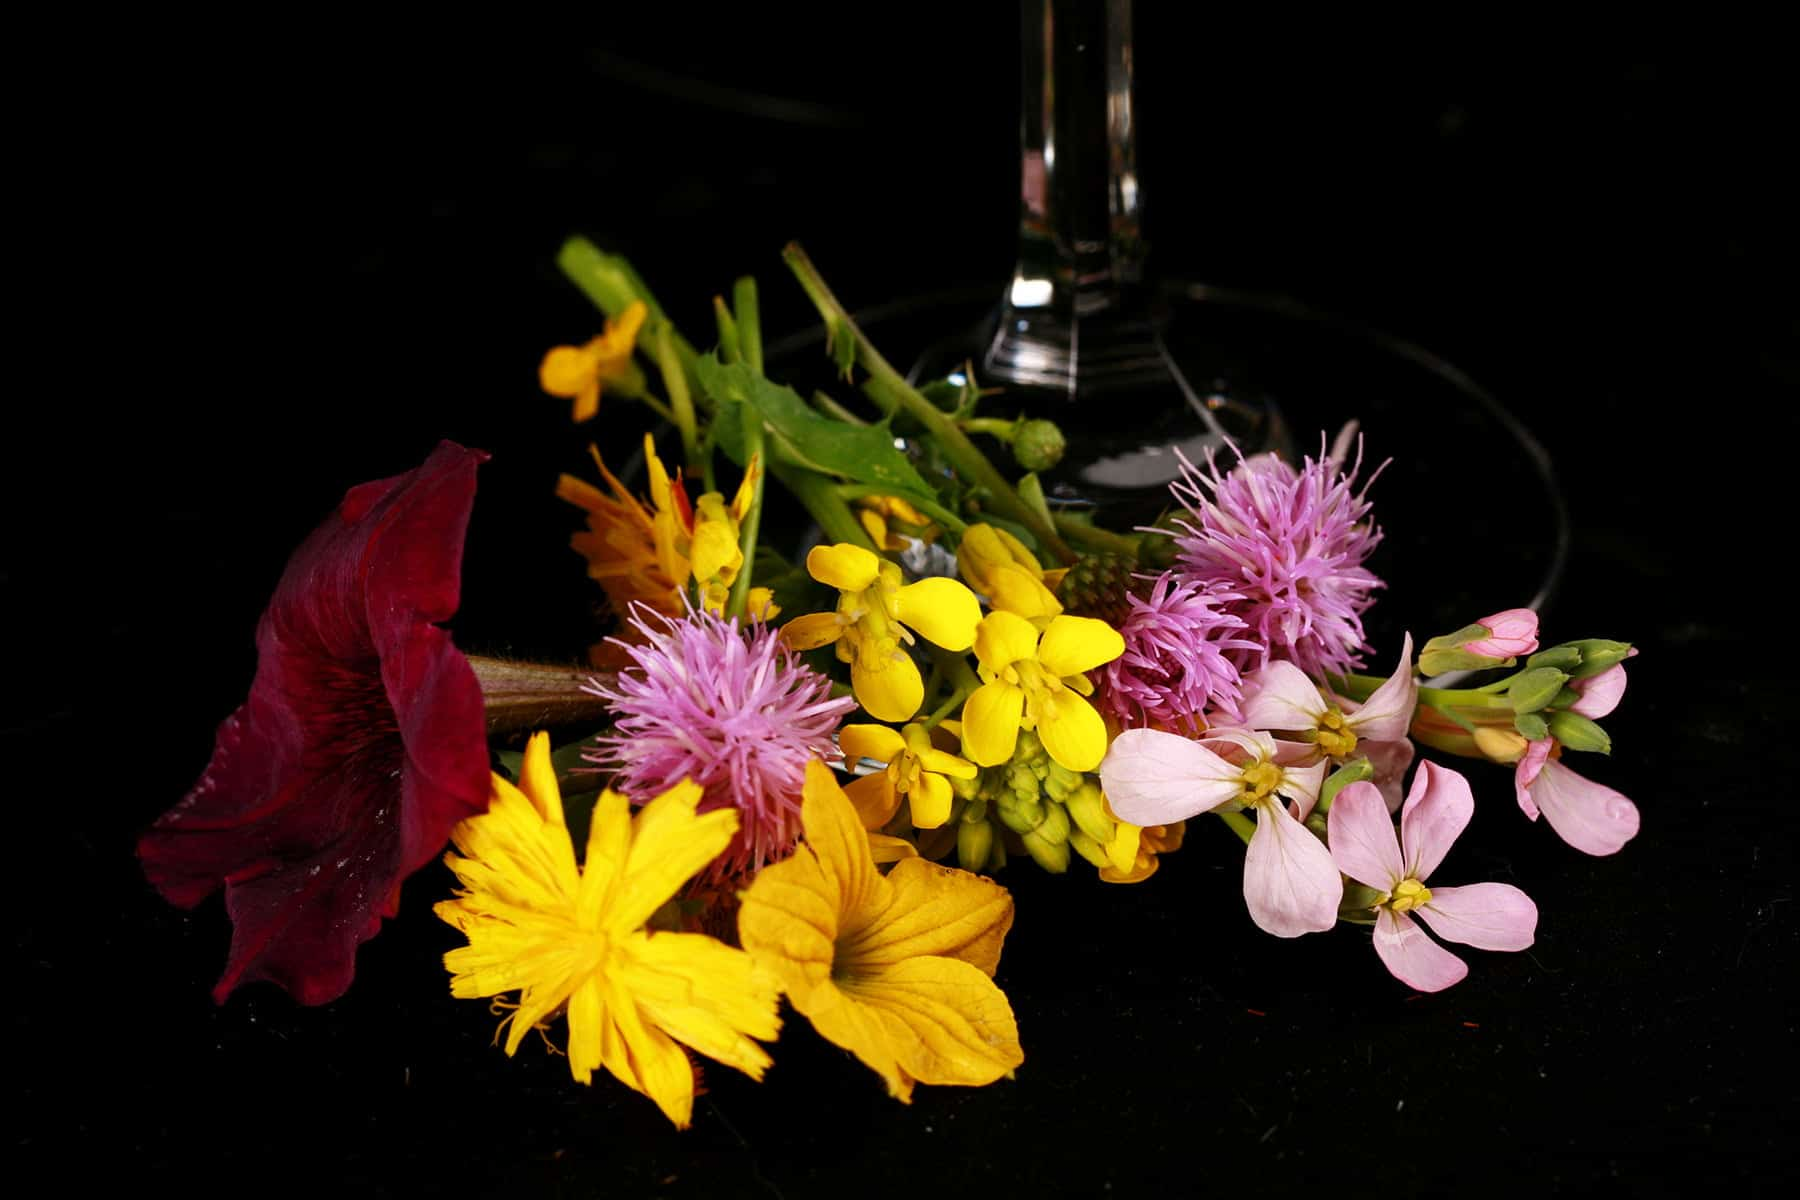 A small bunch of random wildflowers rest at the base of a wine glass.